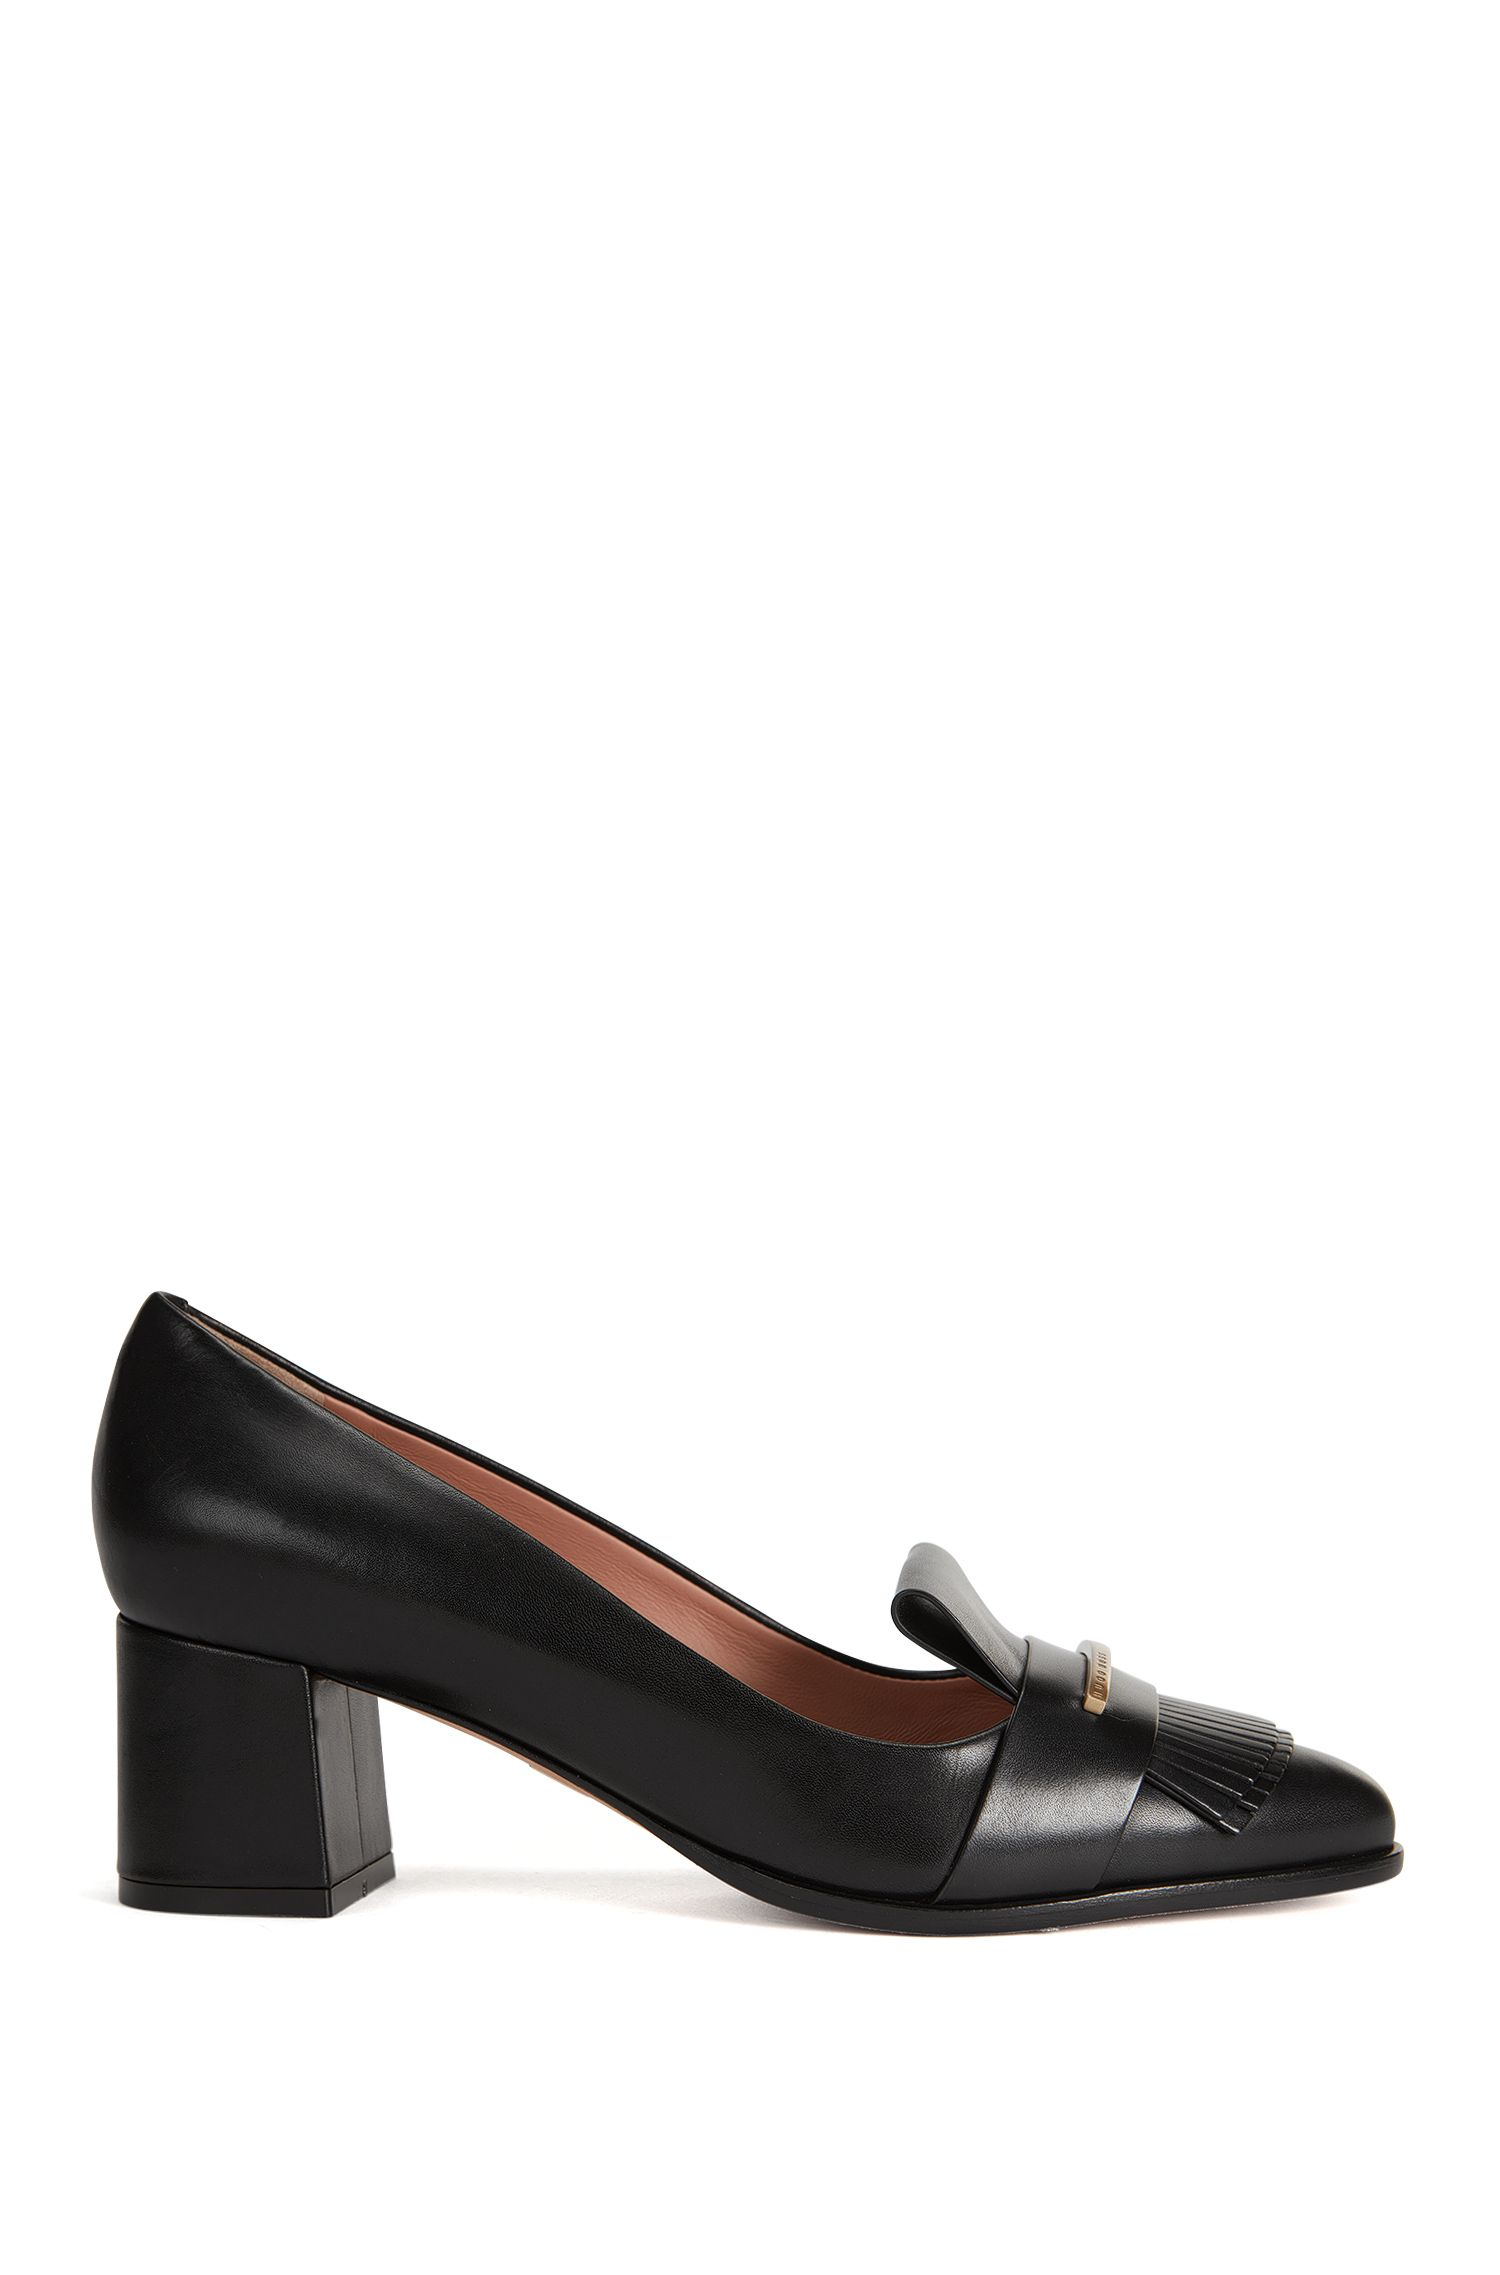 Fringed Italian Leather Pump | Buckle Pump